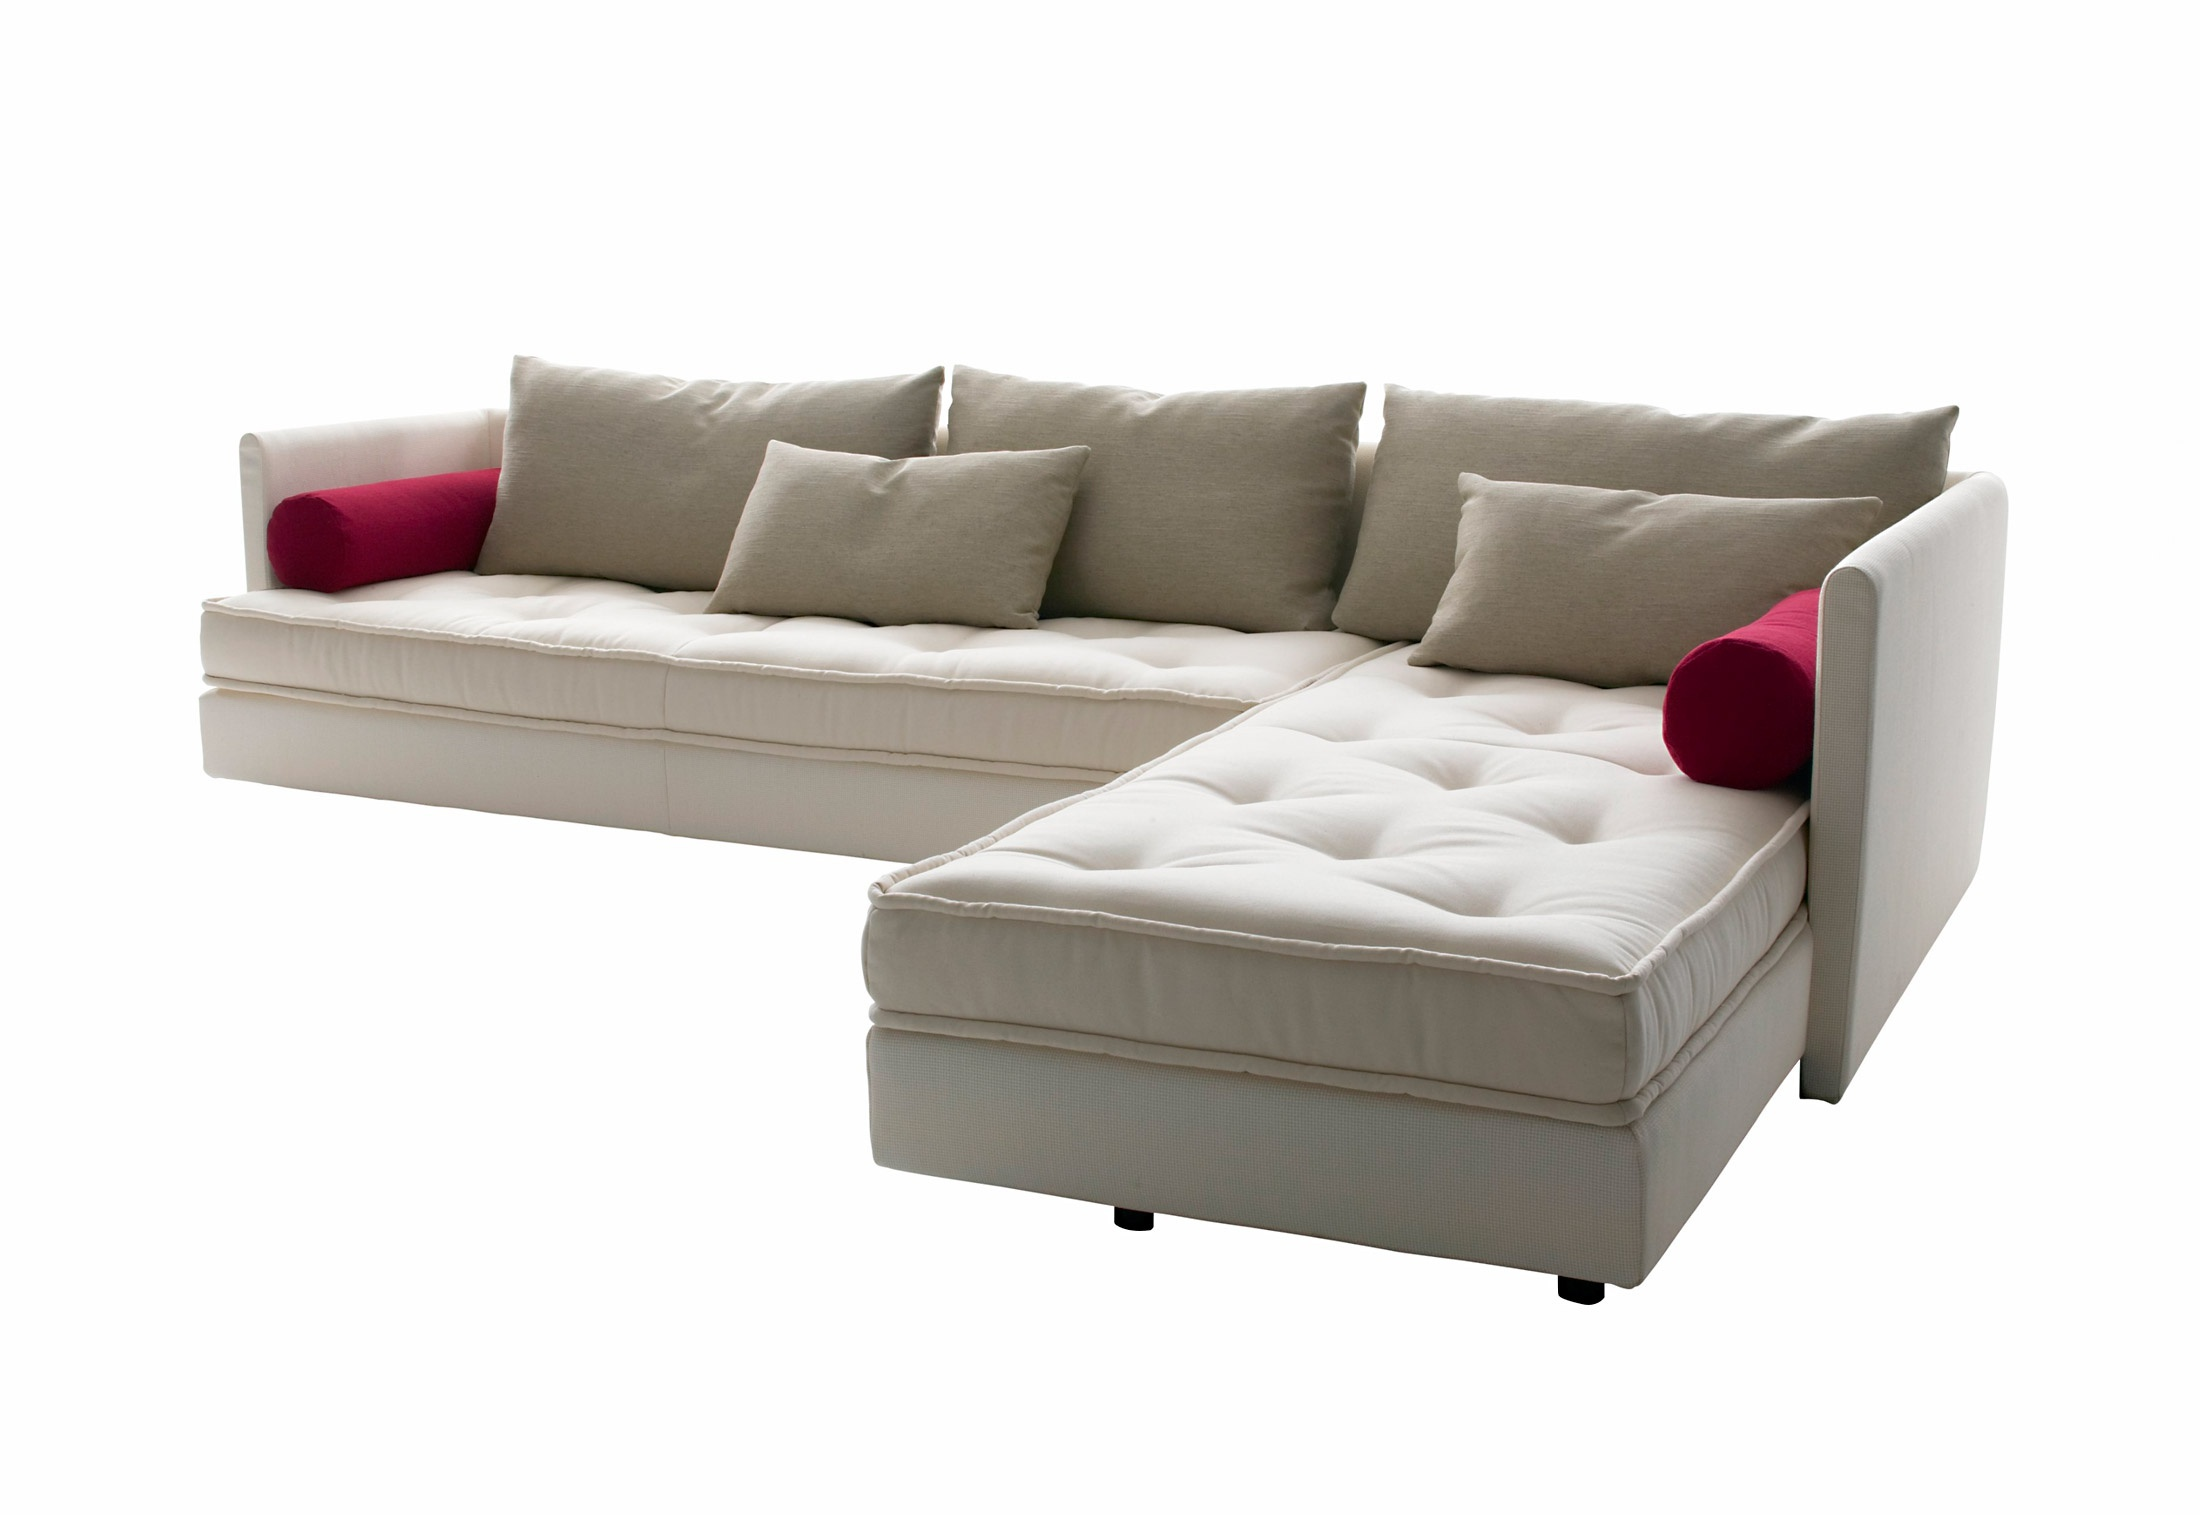 modular sofa in fabric nomade ligne roset luxury. Black Bedroom Furniture Sets. Home Design Ideas